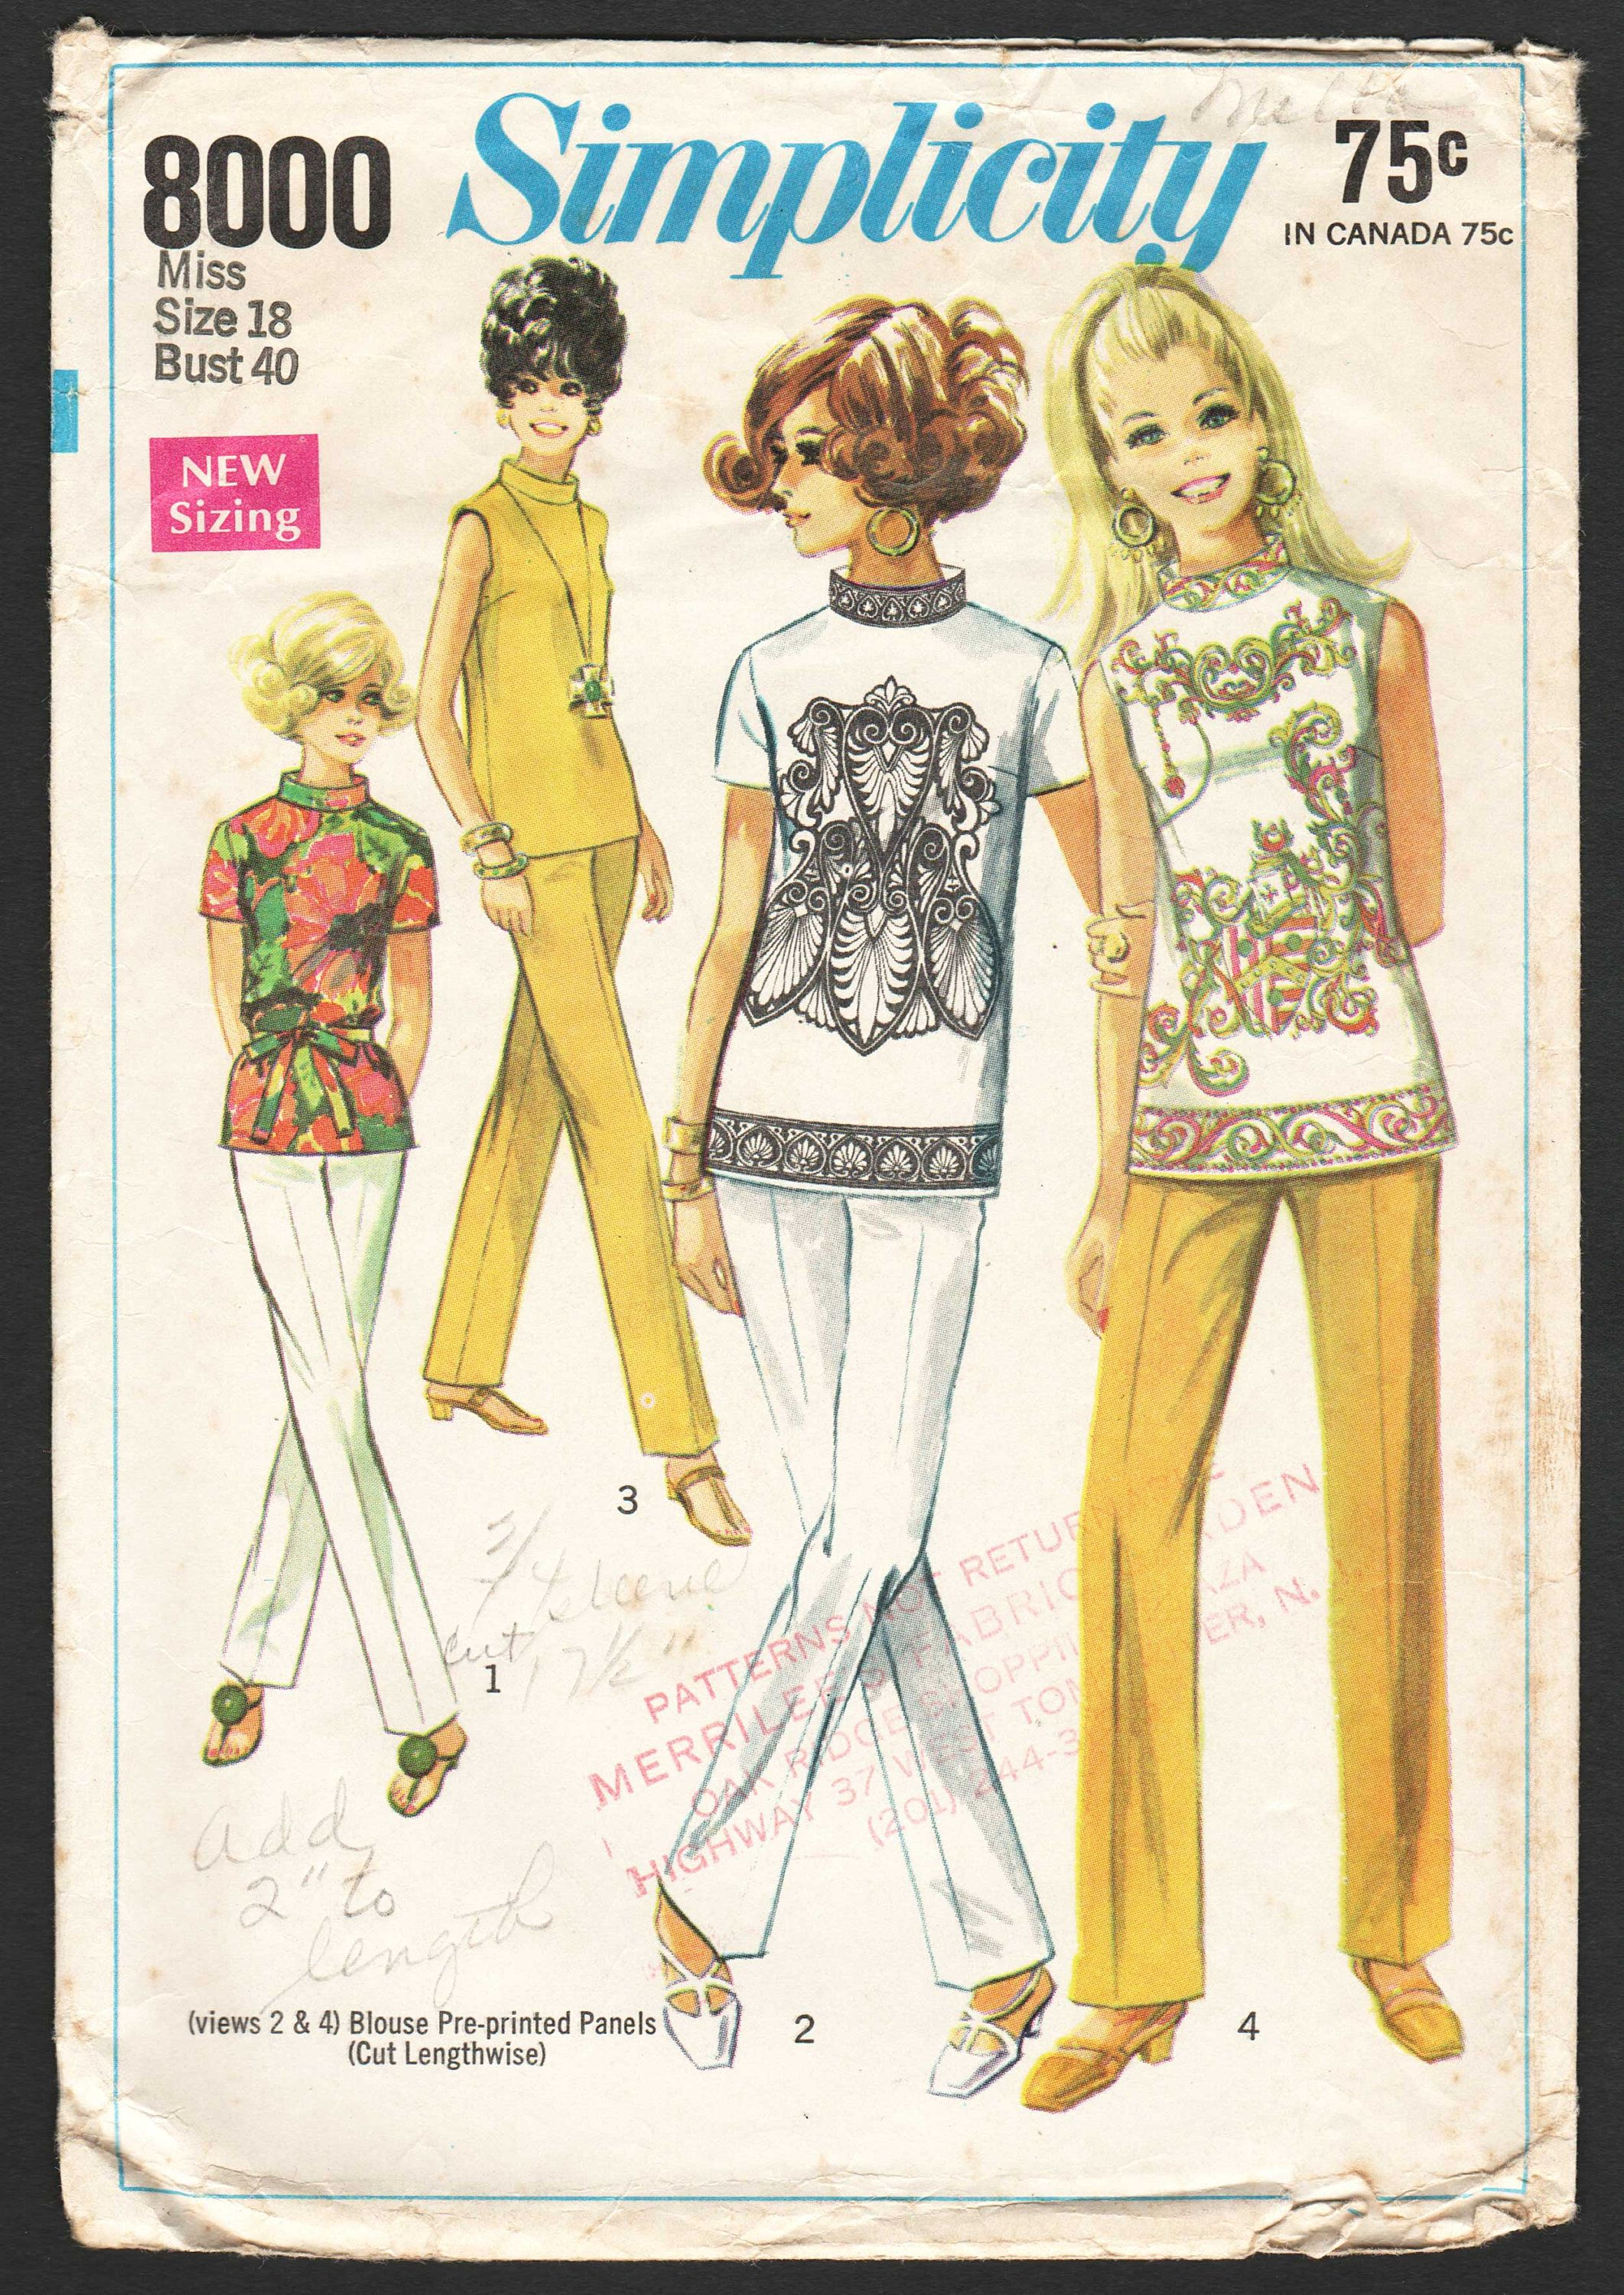 a8e869a51b363c 1960s Vintage Sewing Pattern Simplicity 8000 Misses Womens Blouse Stand Up  Band Collar Top, Straight Leg Pants - Size 18 Bust 40